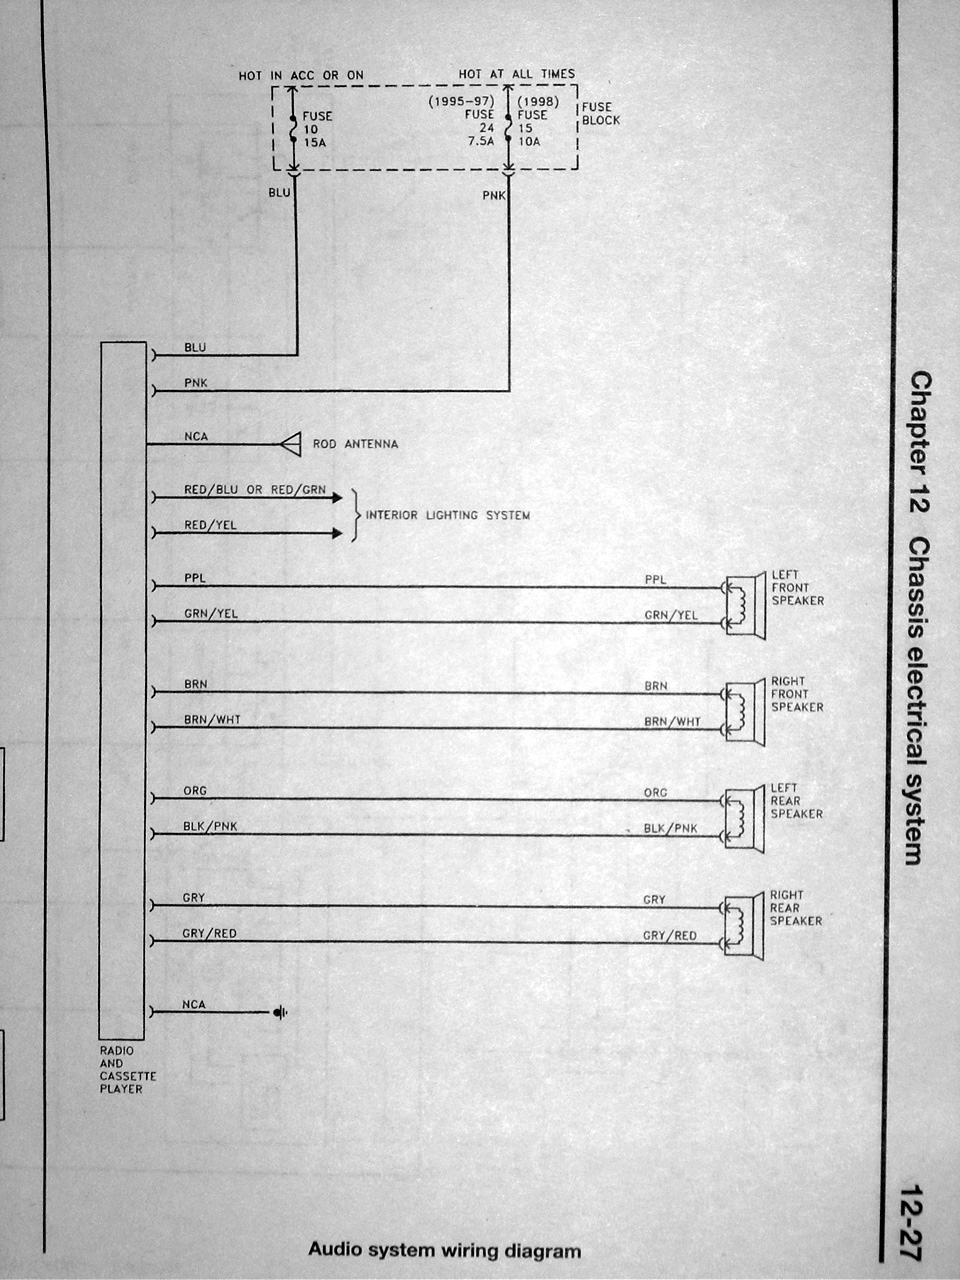 DSC01849 wiring diagram thread *useful info* nissan forum 2010 nissan altima stereo wiring diagram at crackthecode.co